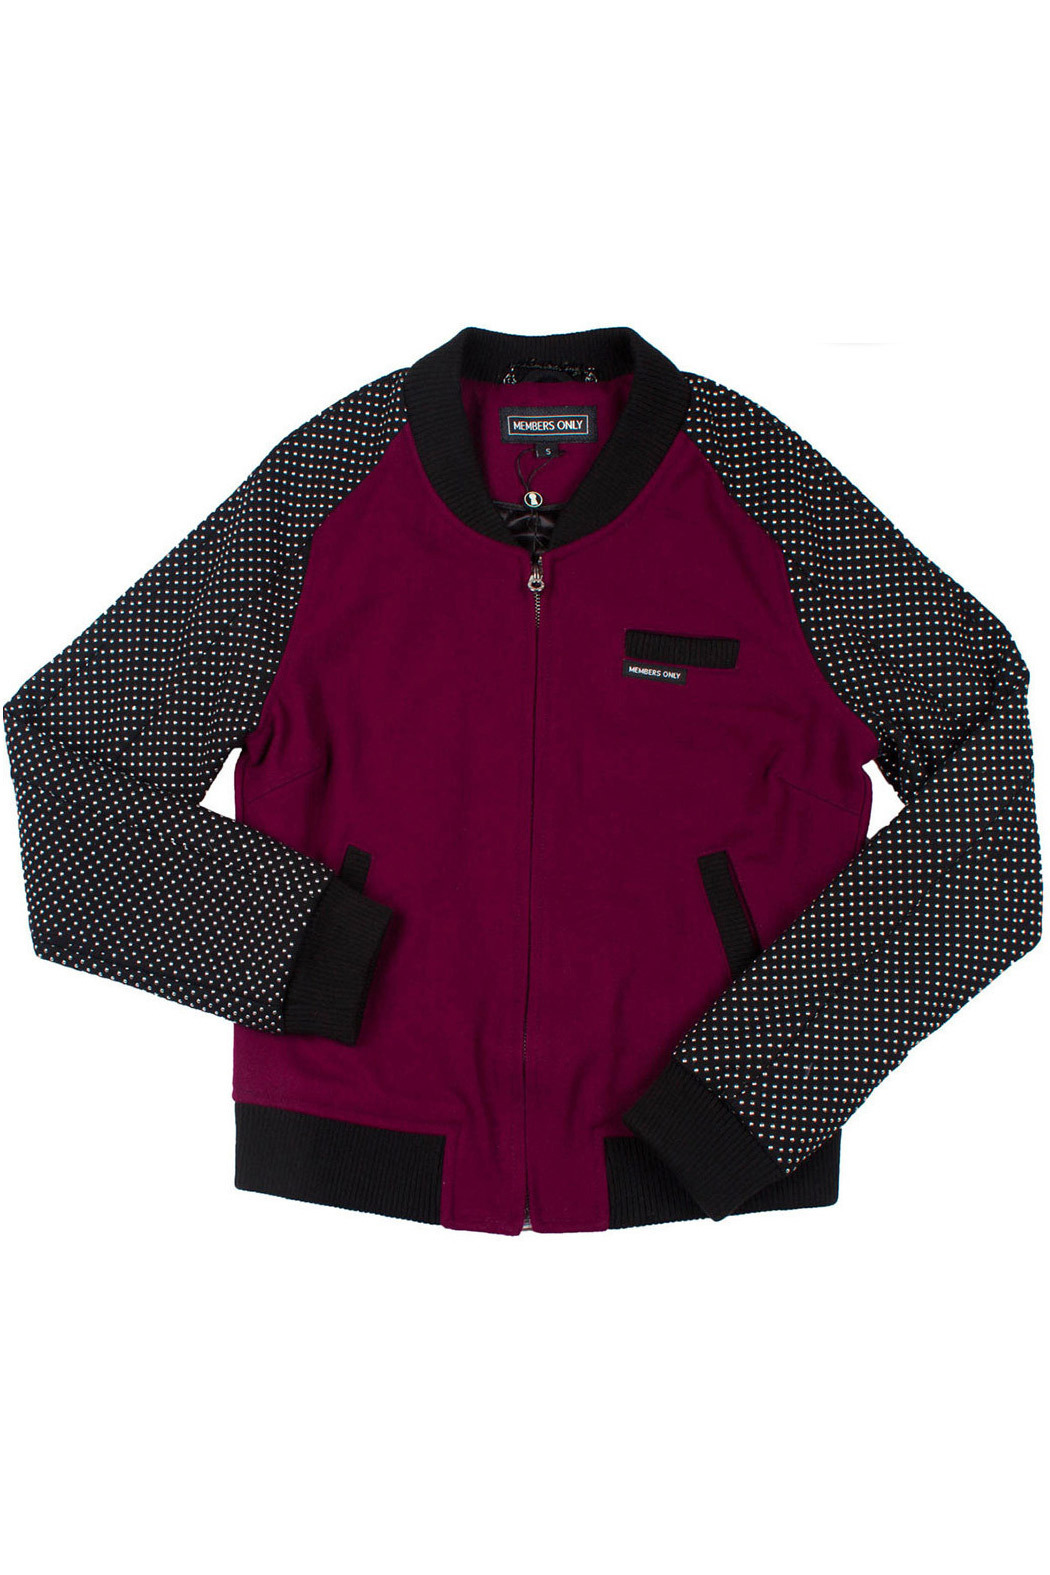 Members Only Studded Baseball Jacket - Front Cropped Image